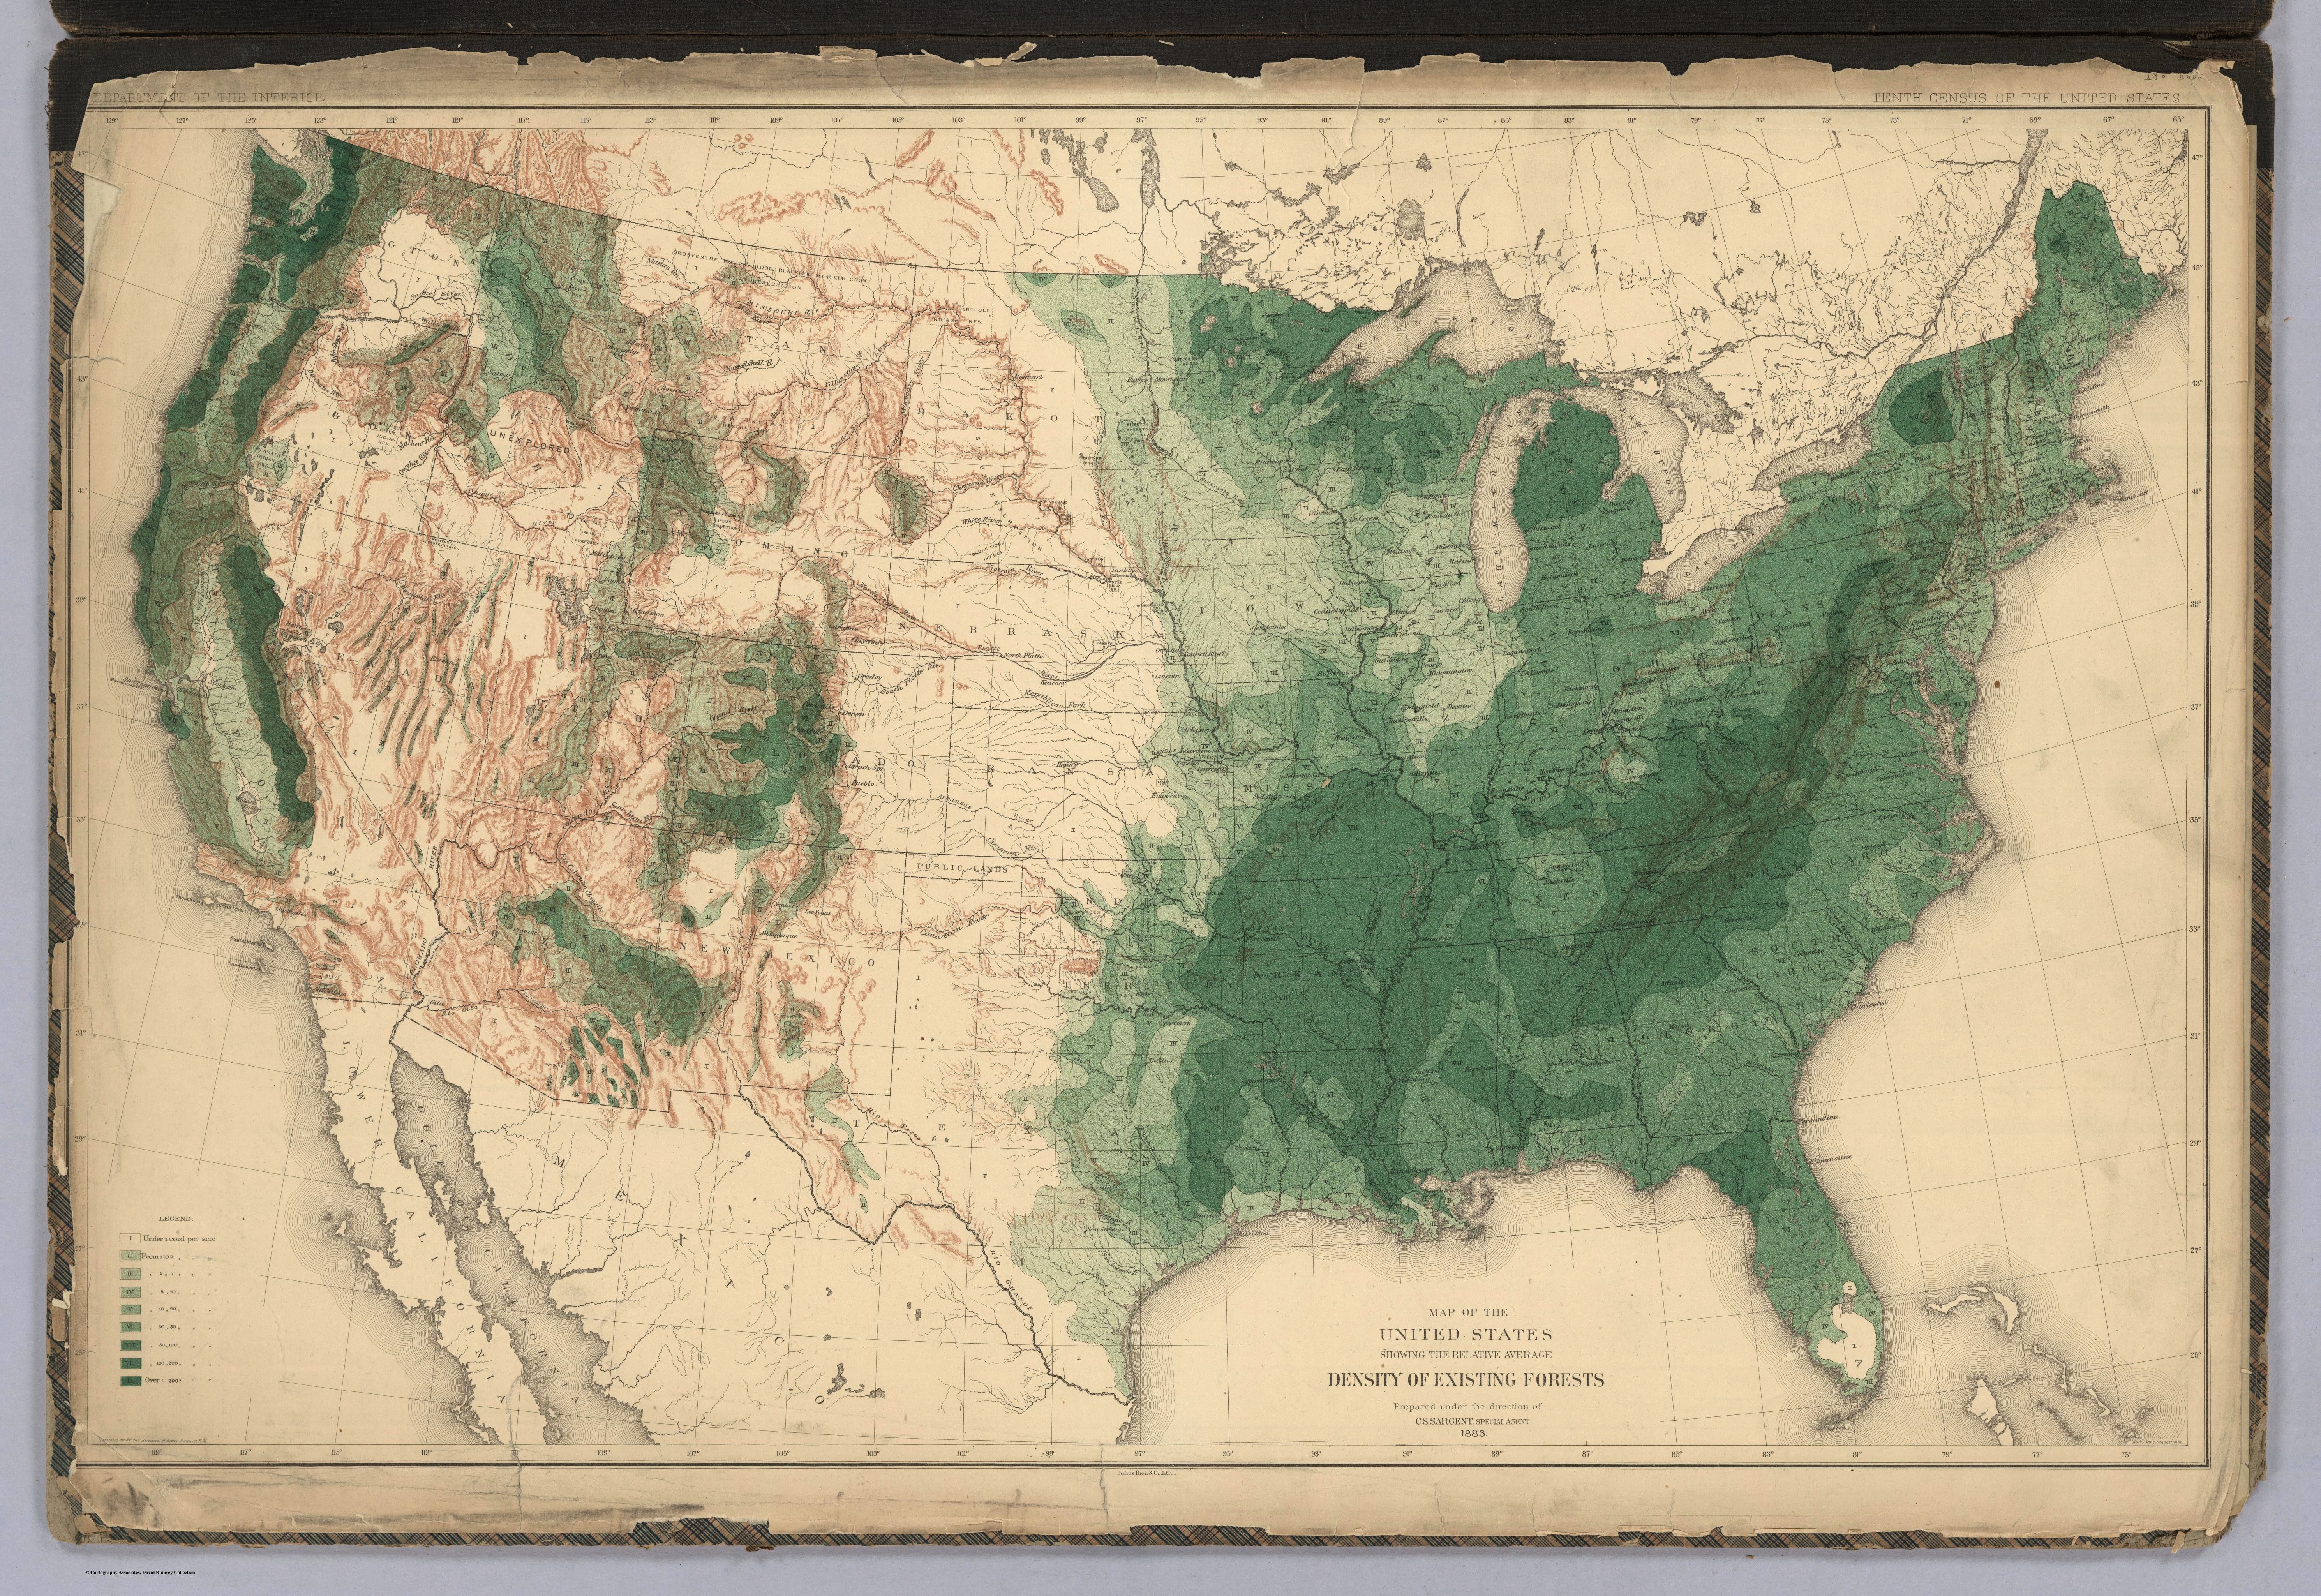 Pretty Tree Maps Showing The State Of American Forests In - Us population density map 1870s